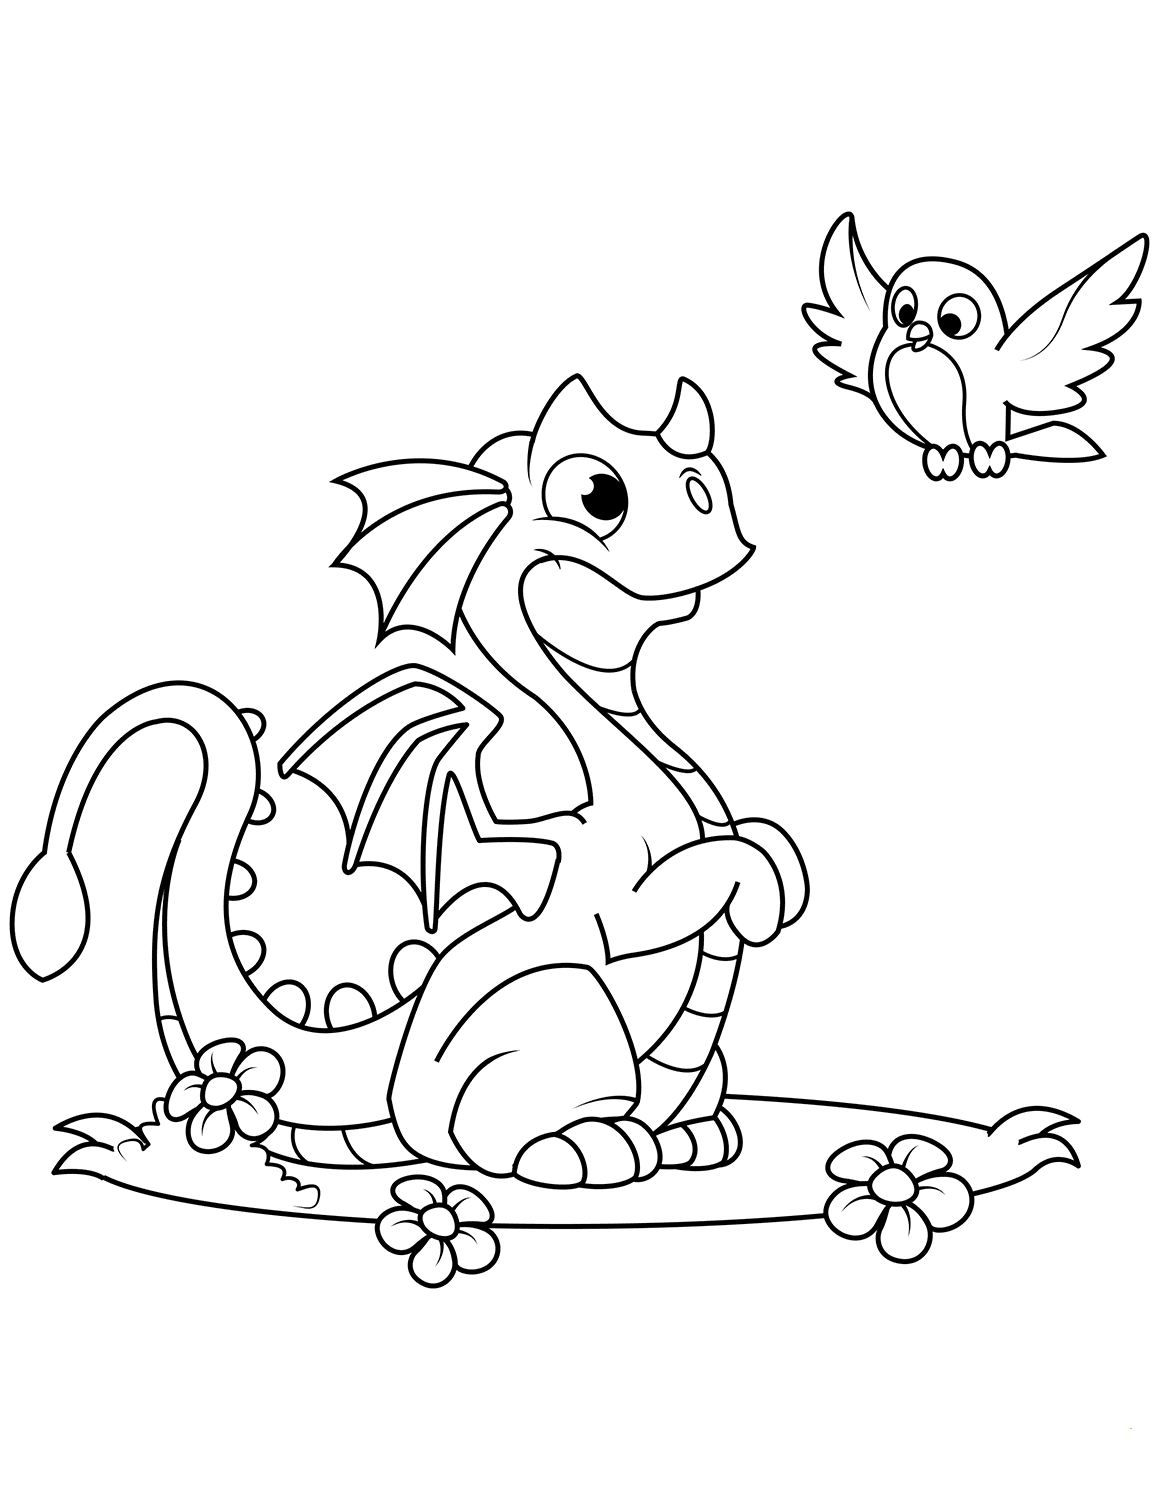 Printable coloring pages and dragons ~ 35 Free Printable Dragon Coloring Pages